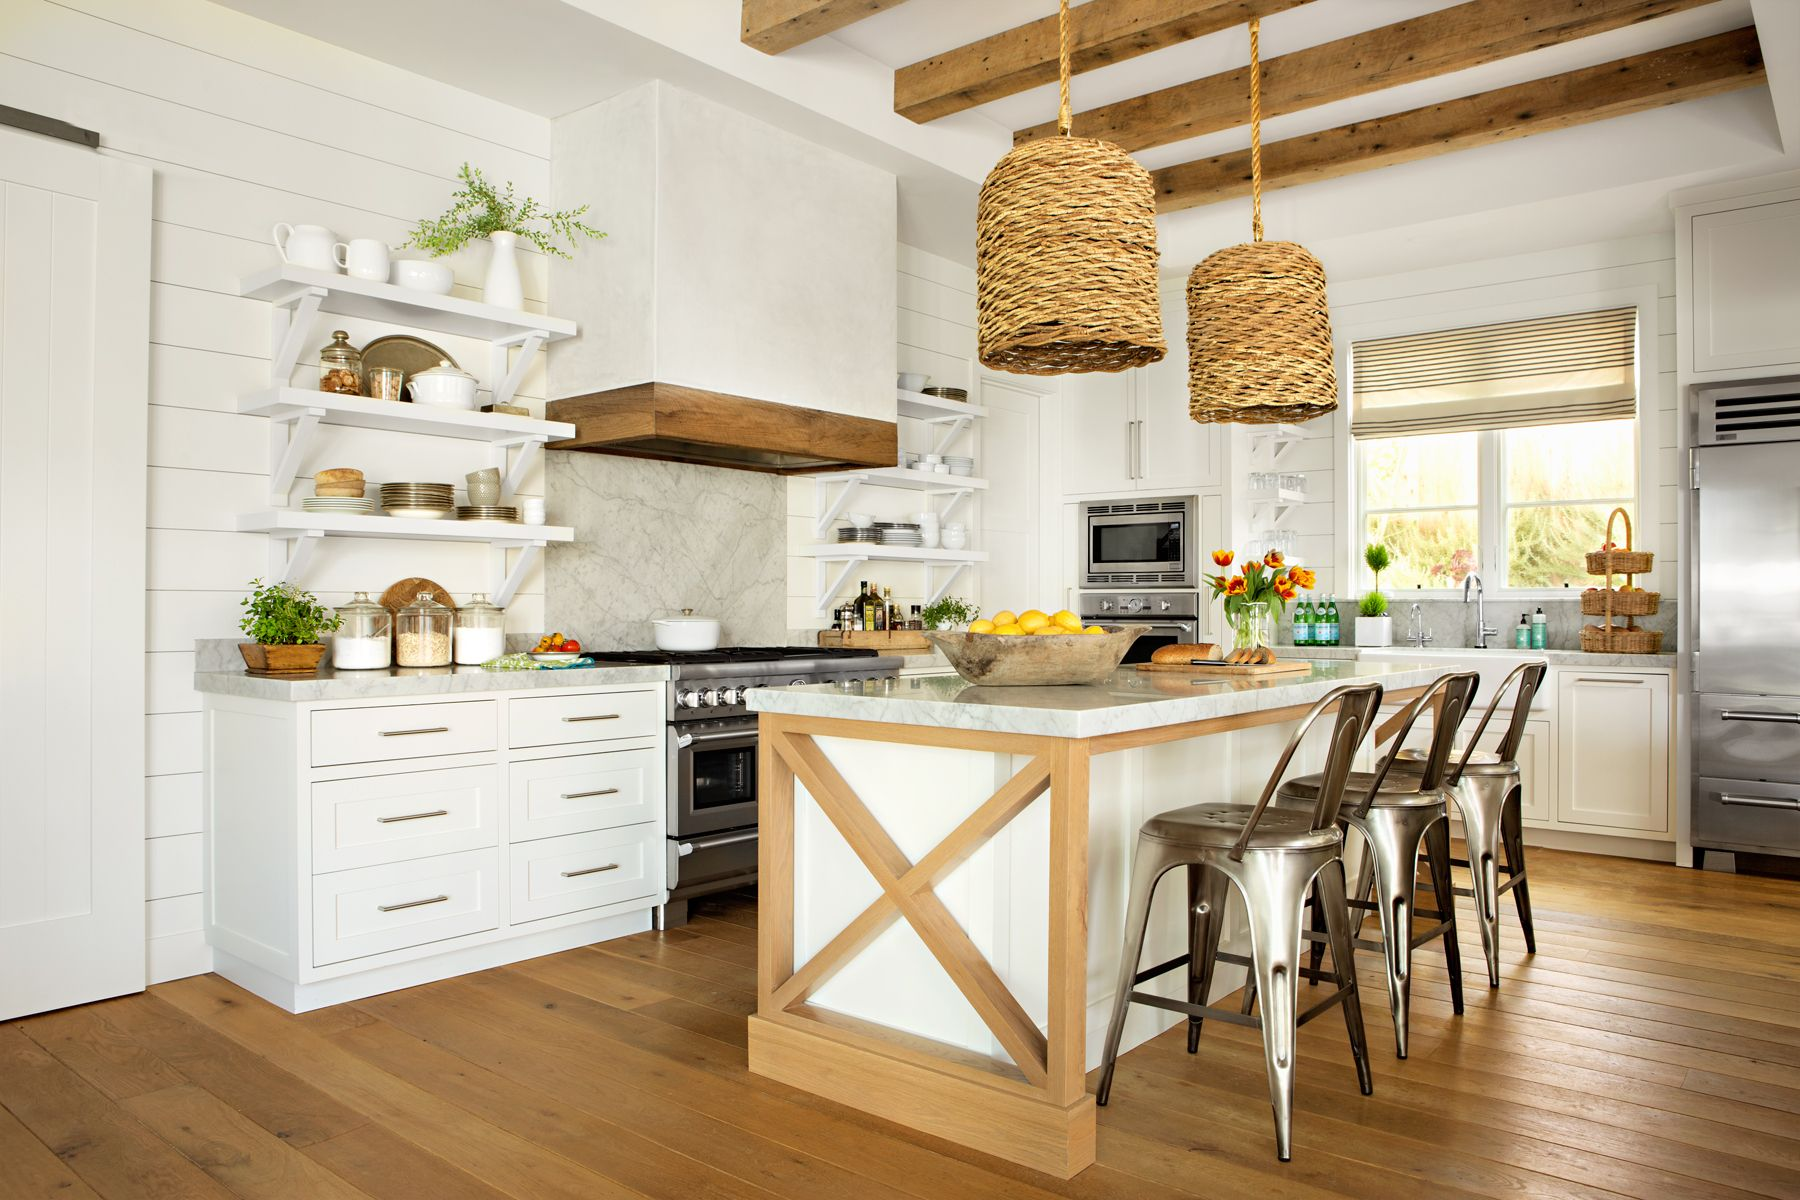 Best Inside A California Bungalow That S Equal Parts Country 400 x 300